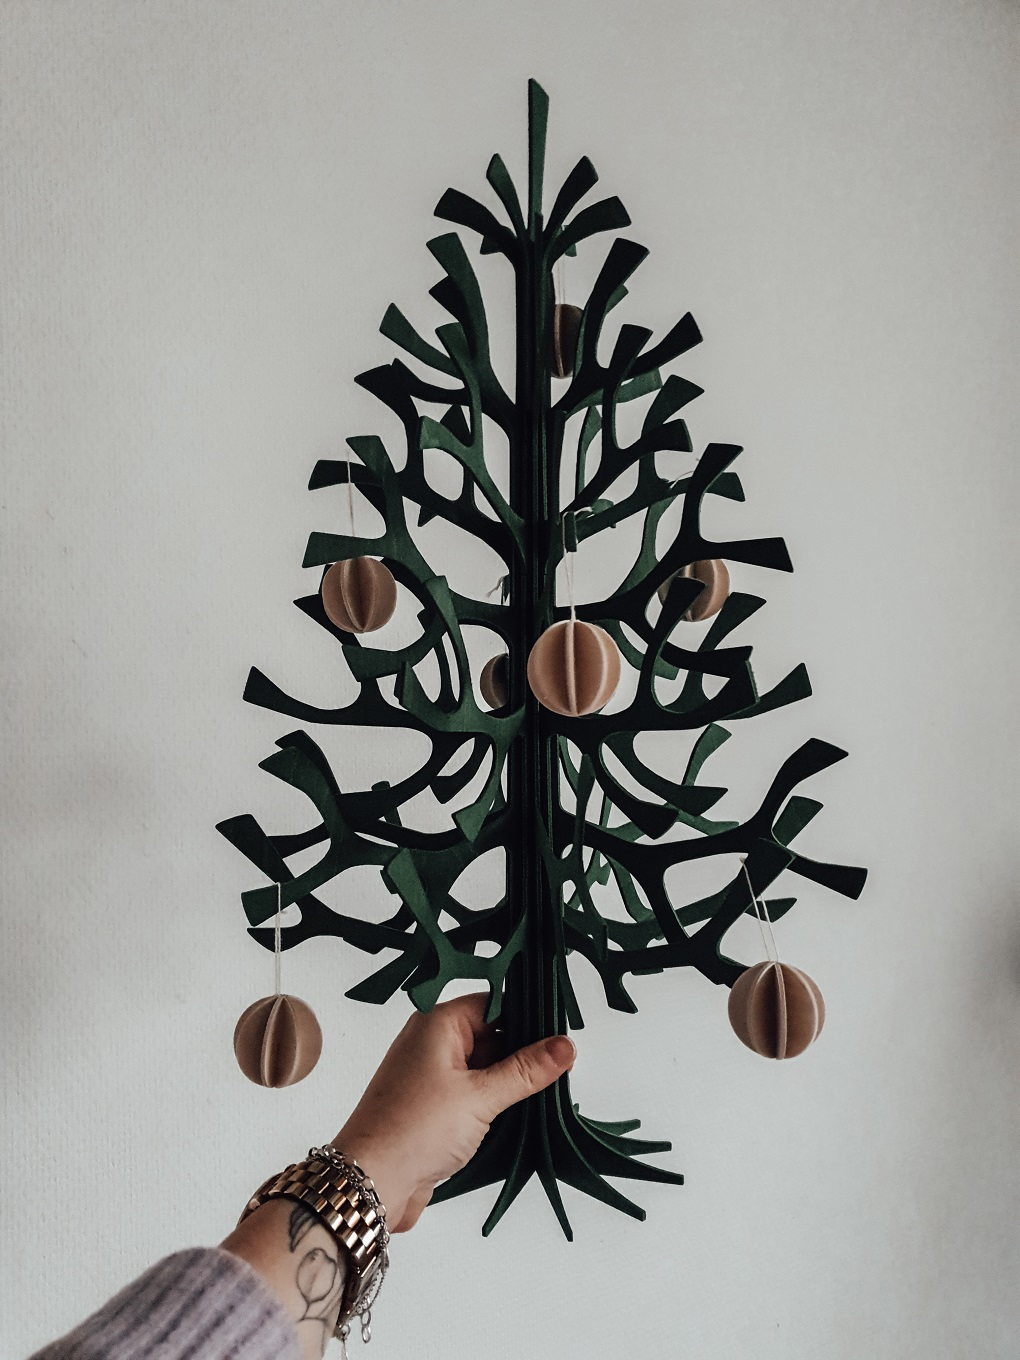 Nordic Christmas: Lovi - introducing the perfect sustainable 3D wooden puzzle Christmas tree elisabeth rundlöf